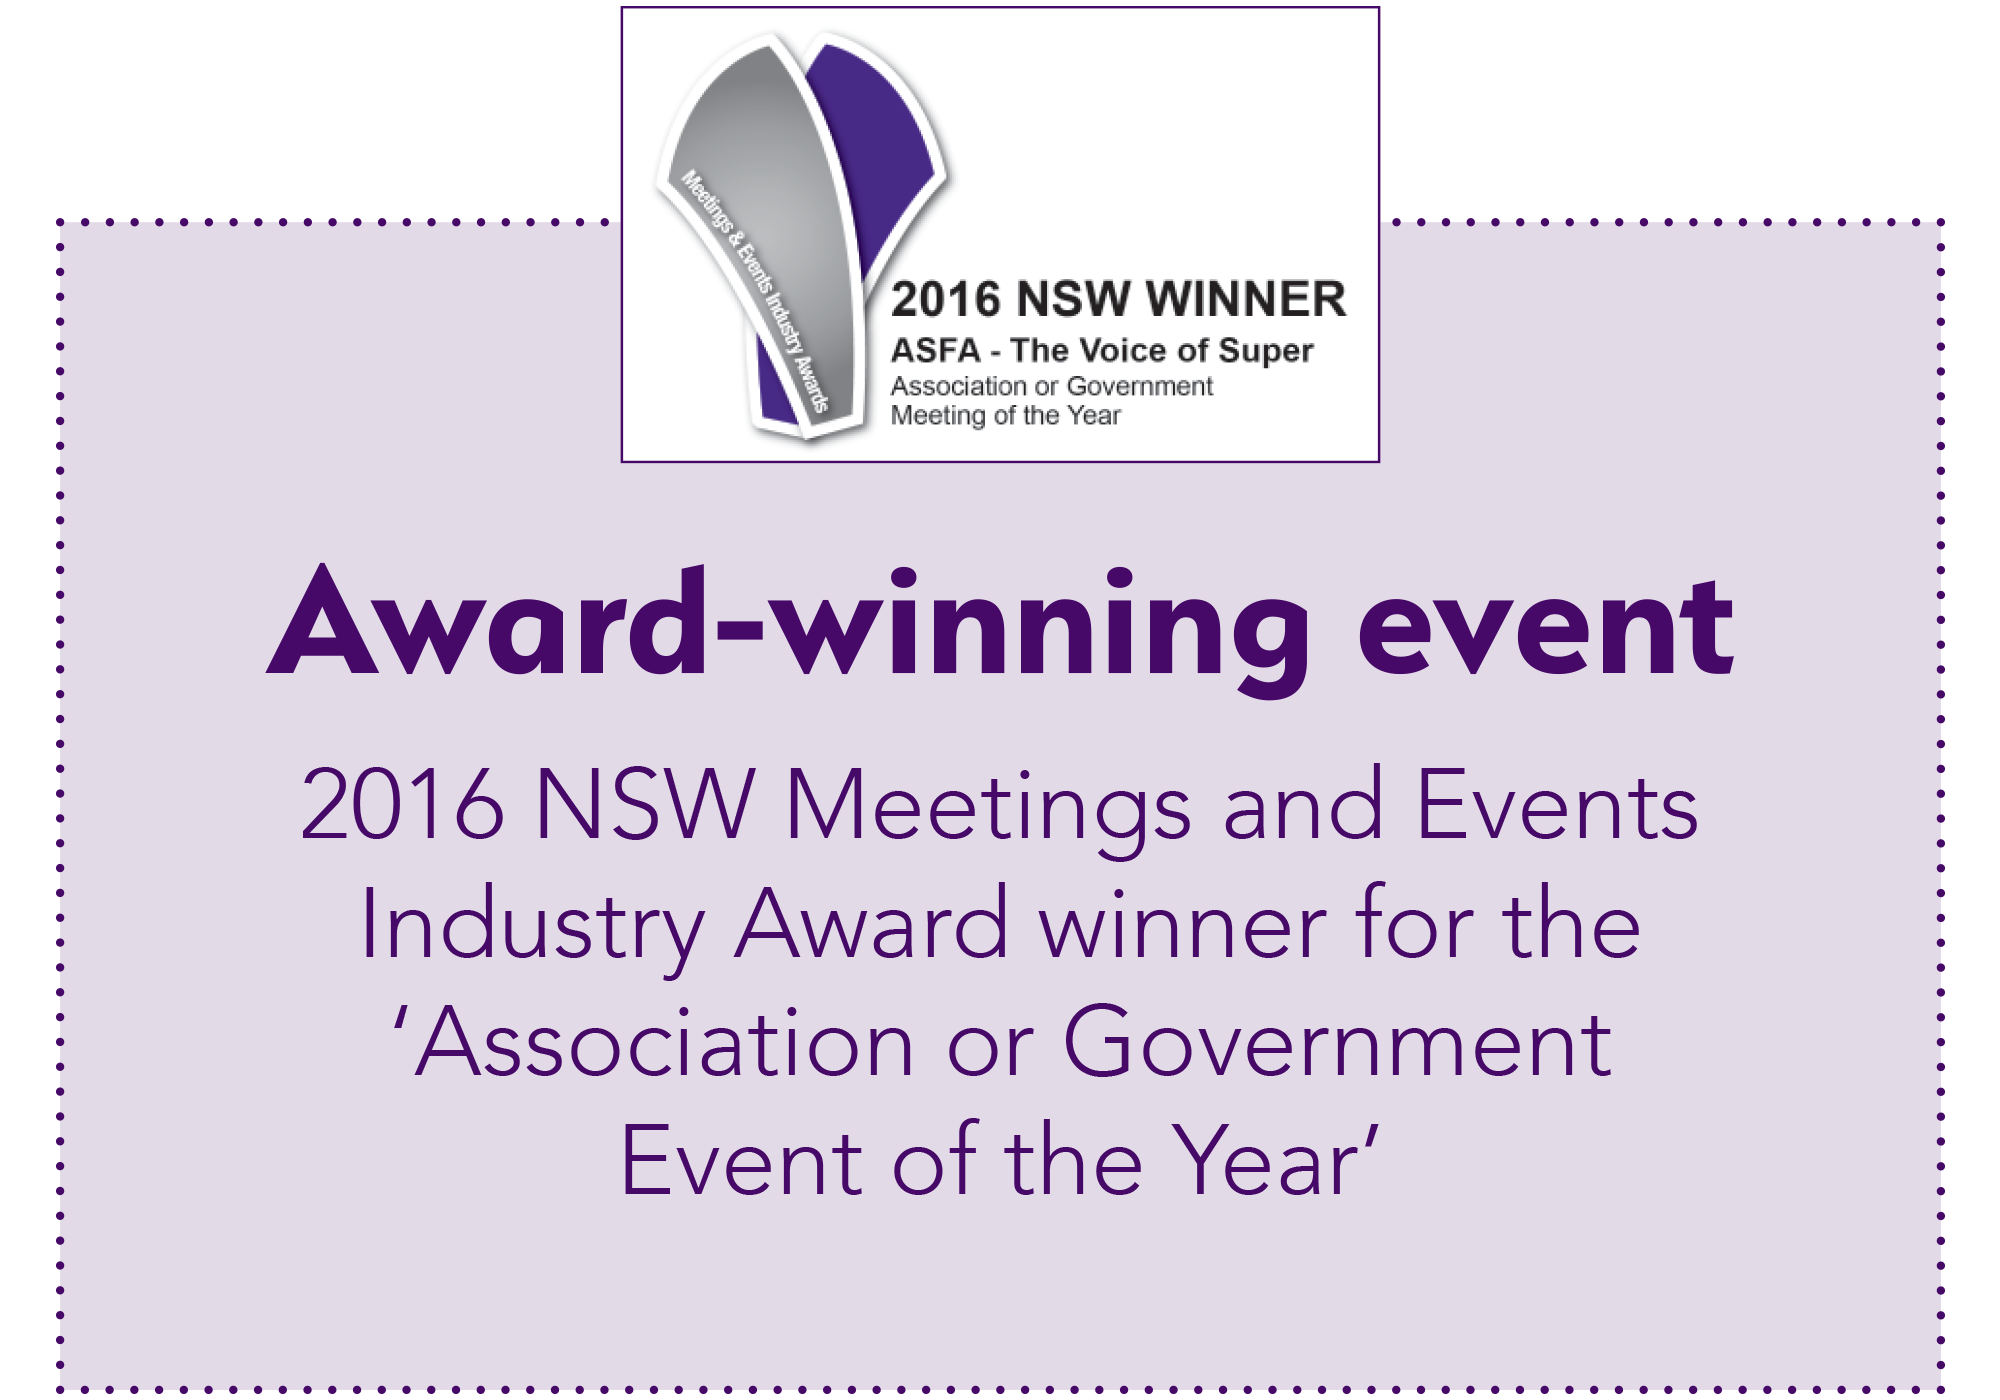 Award winning event - 2016 NSW Meetings and Events Industry Award winner for 'Association or Government Event of the Year